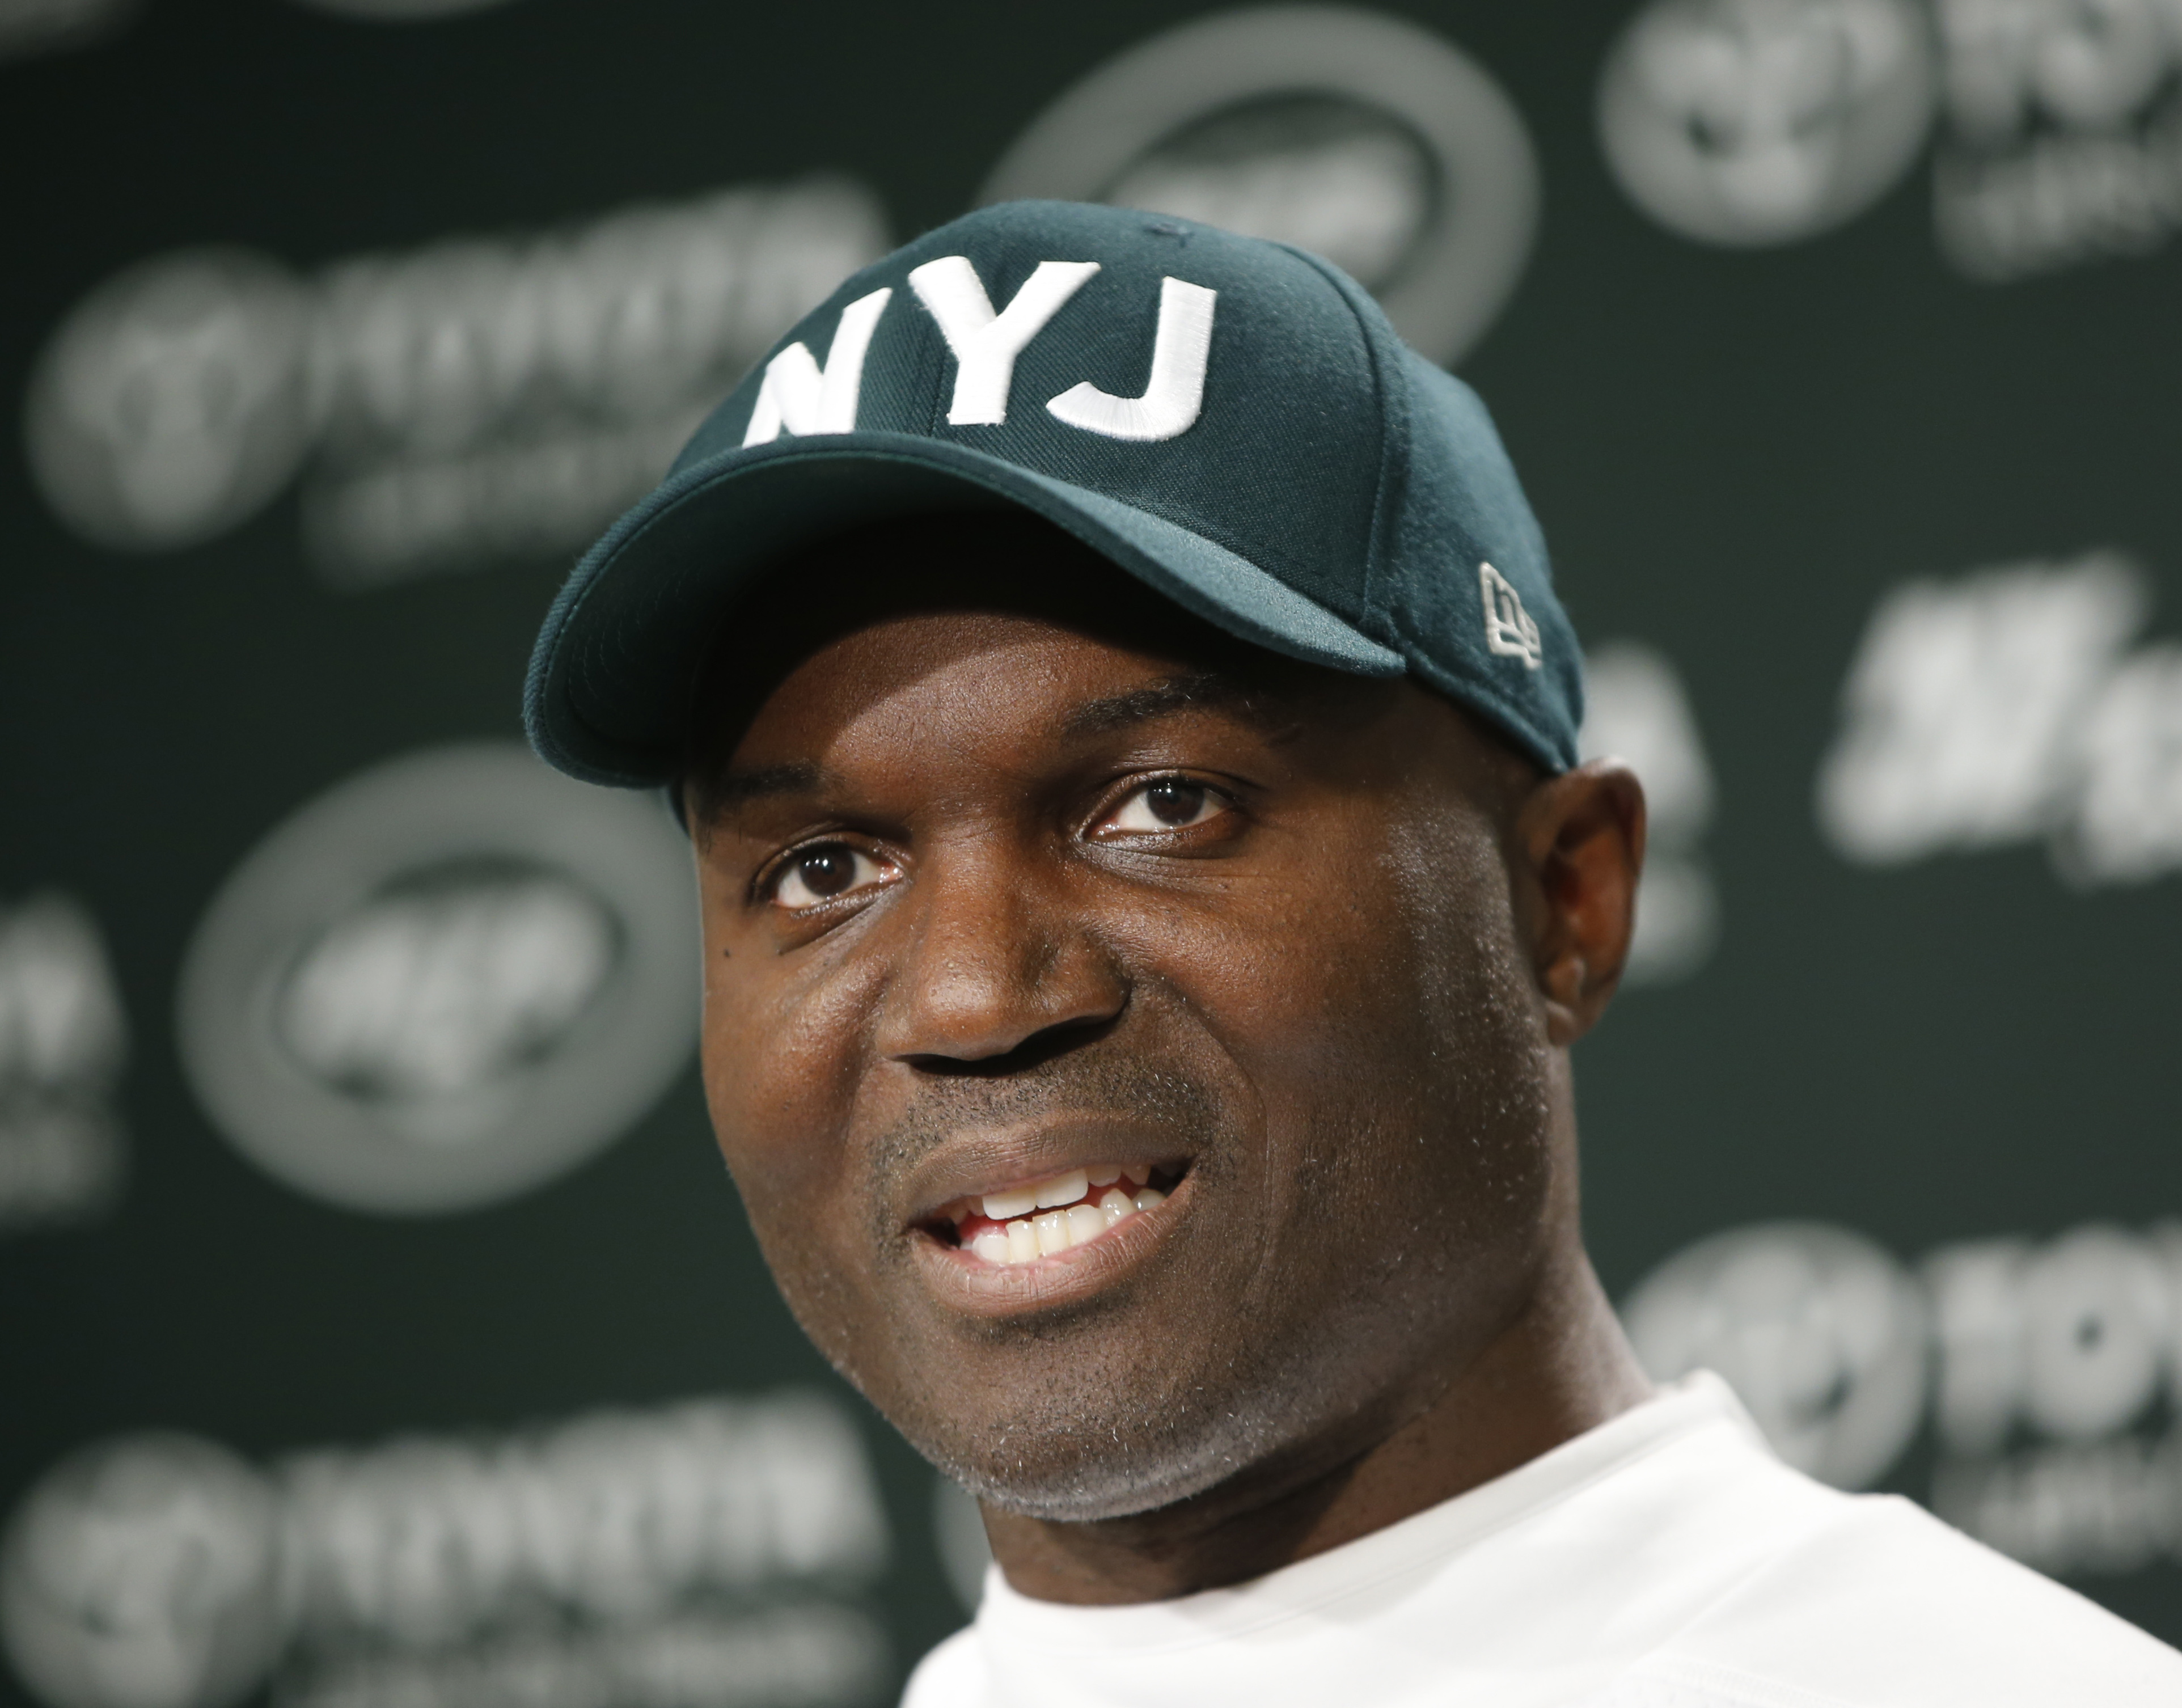 New York Jets head coach Todd Bowles speaks during an NFL football press conference at the team's training facility, Wednesday, Dec. 30, 2015, in Florham Park, NJ.  The Jets are preparing for Sunday's game against the Buffalo Bills and Jets former coach R